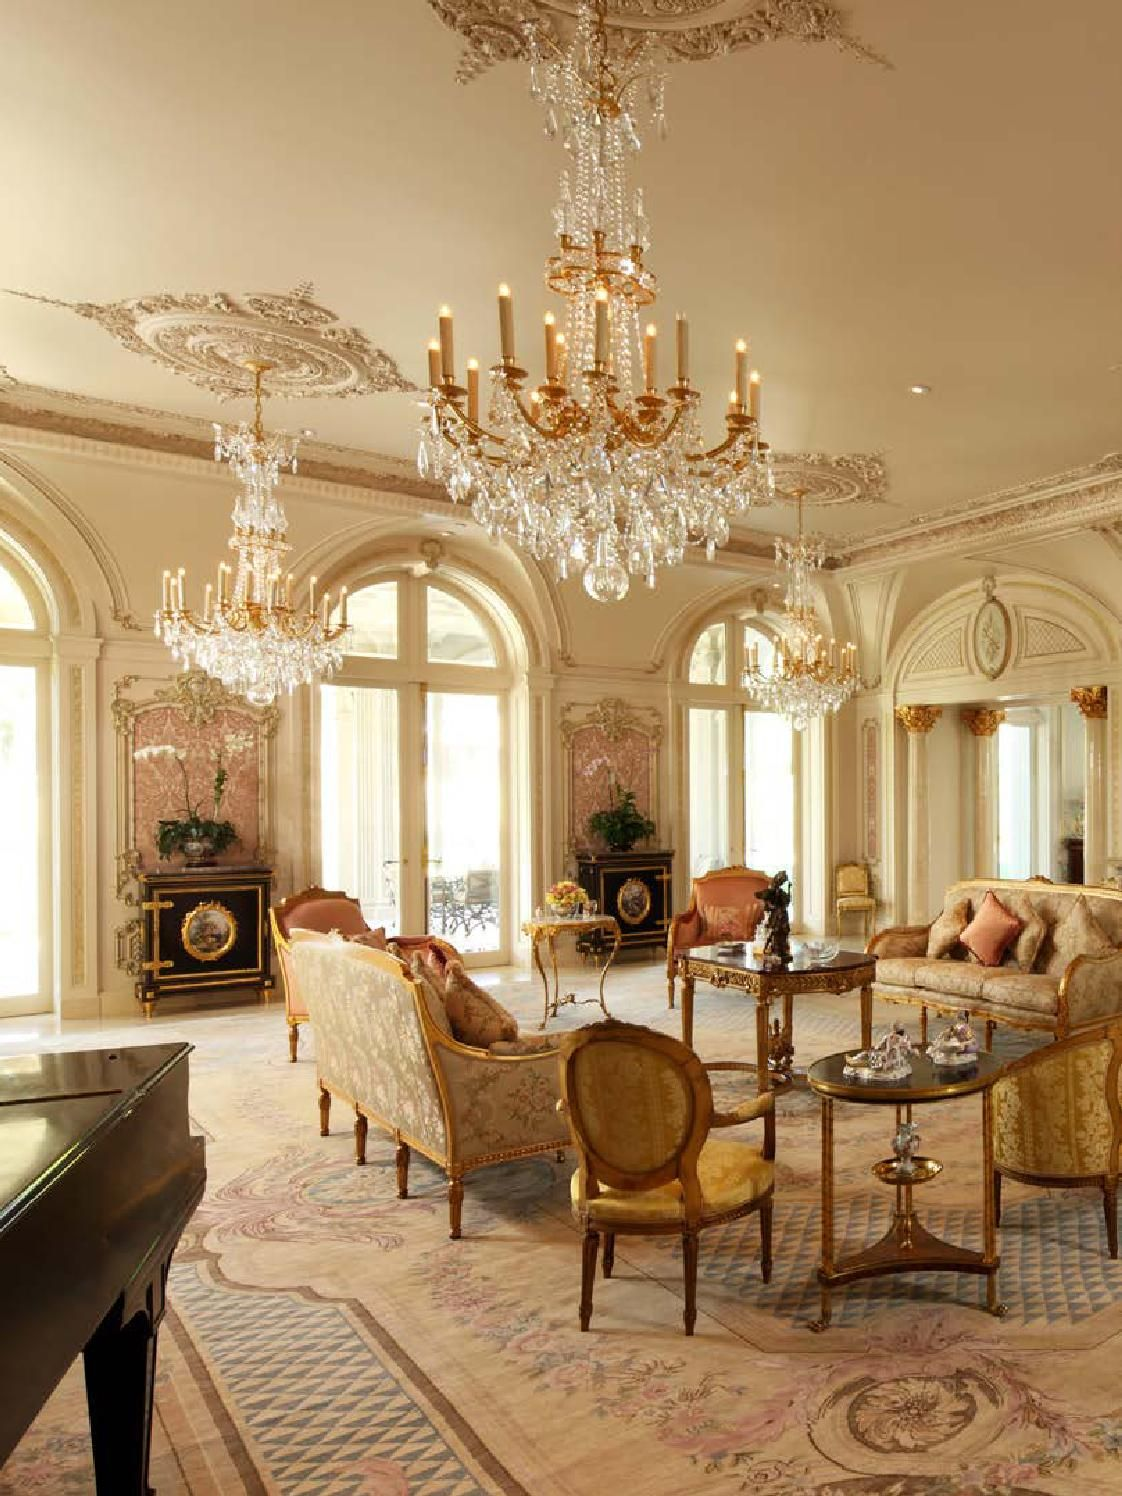 Home Decor Interior Design: European Neo-classical Style II In 2020